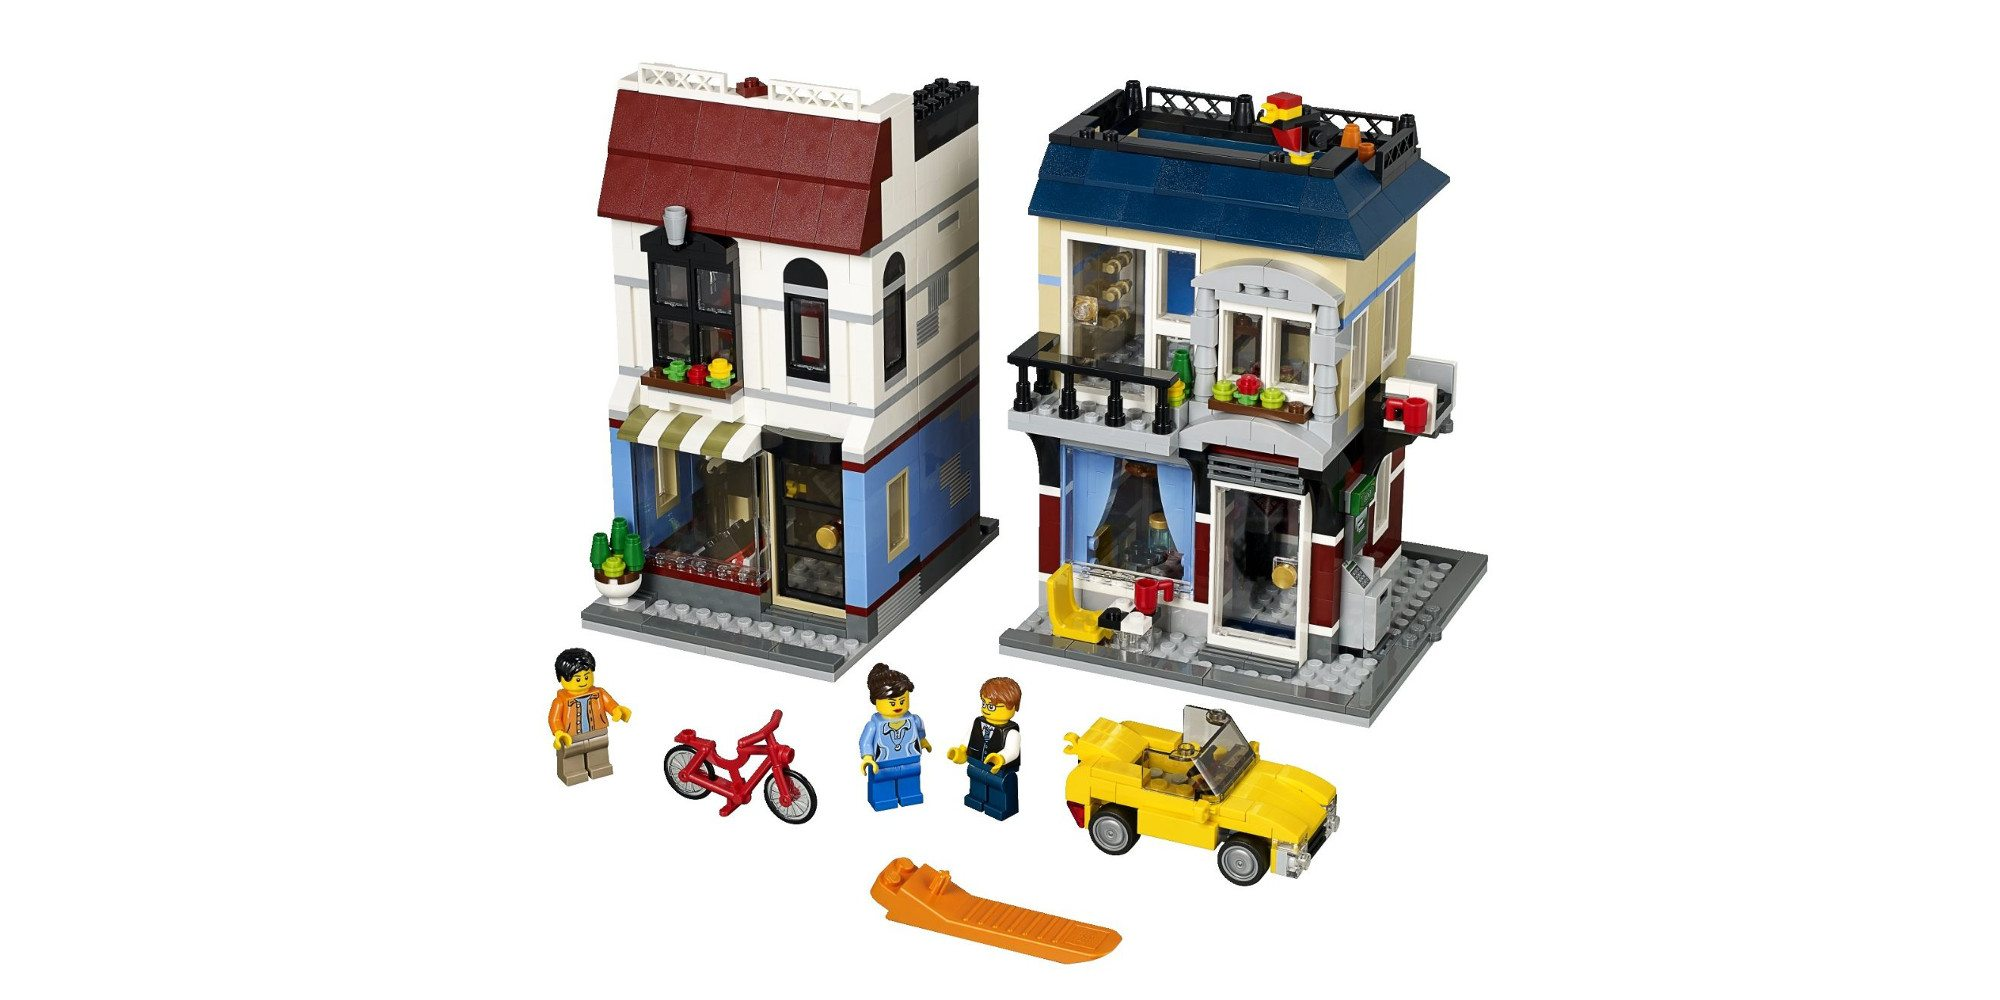 Lego Bike Shop And Cafe Price